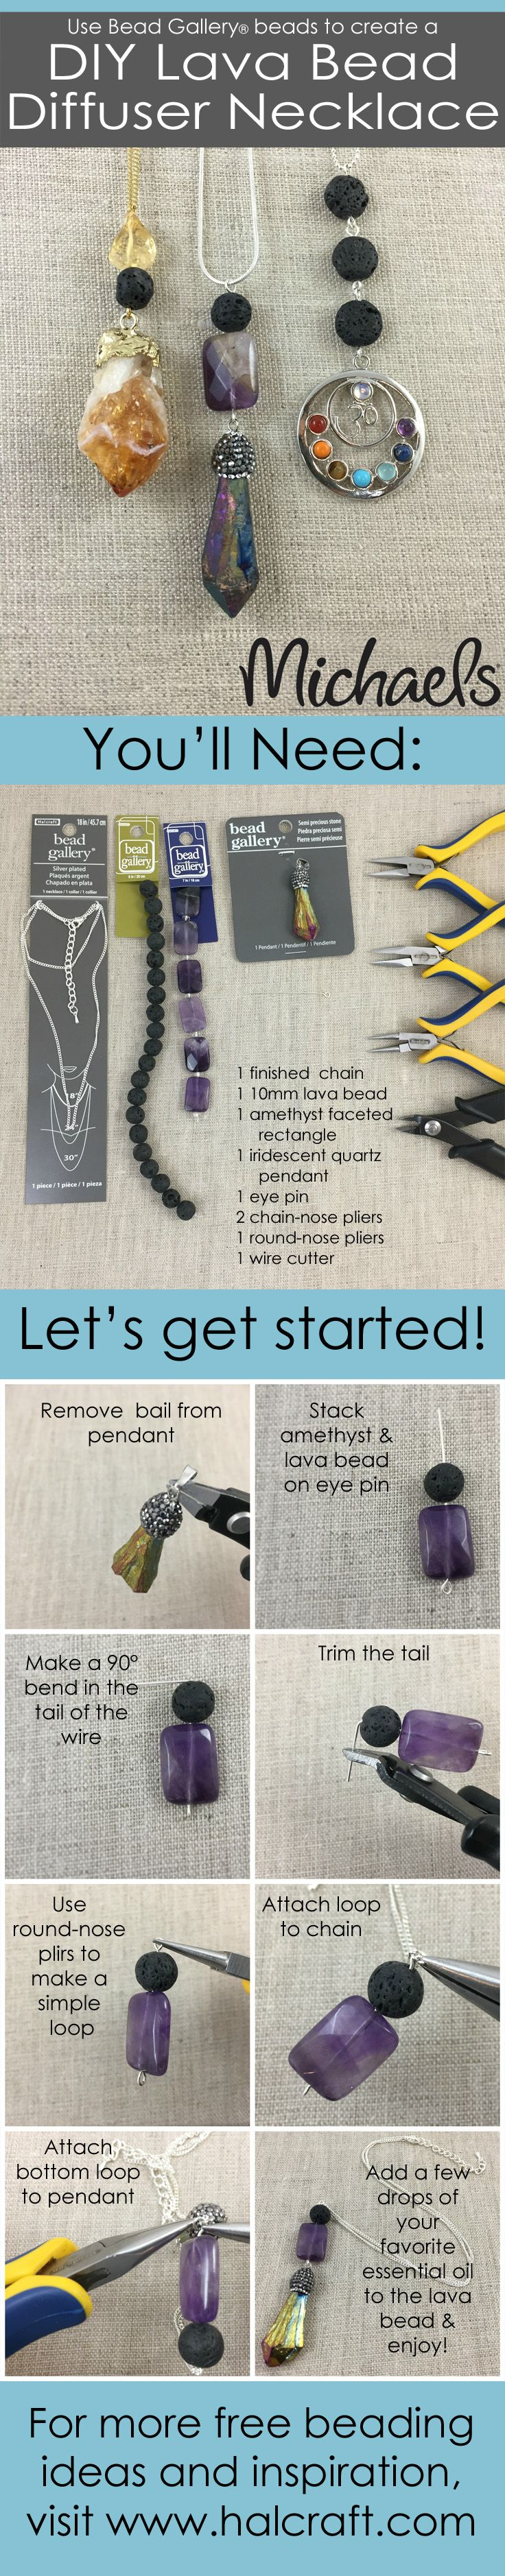 DIY Essential Oil Diffuser Necklace - Crafts Unleashed | Oil ...